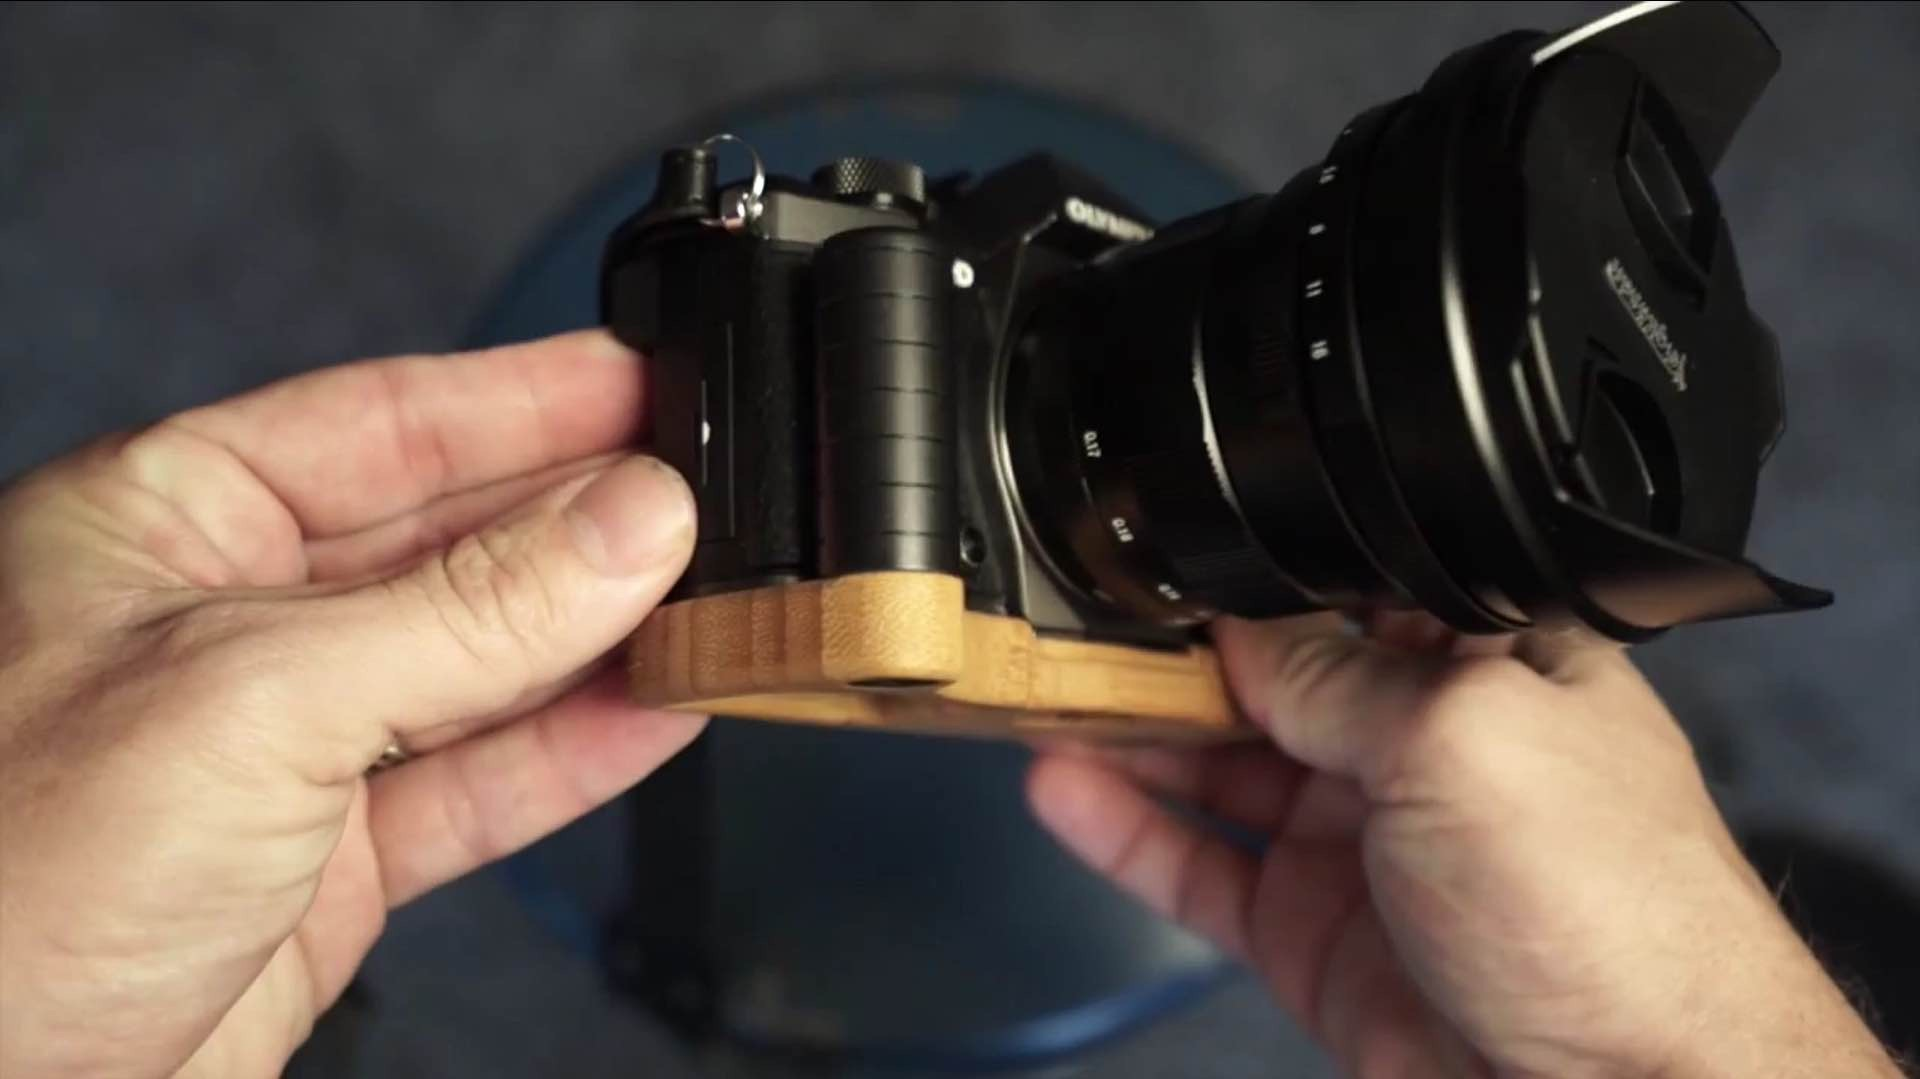 J.B. Camera Designs' wooden camera grip-bases. ($50–$80)Photo: Steve Huff